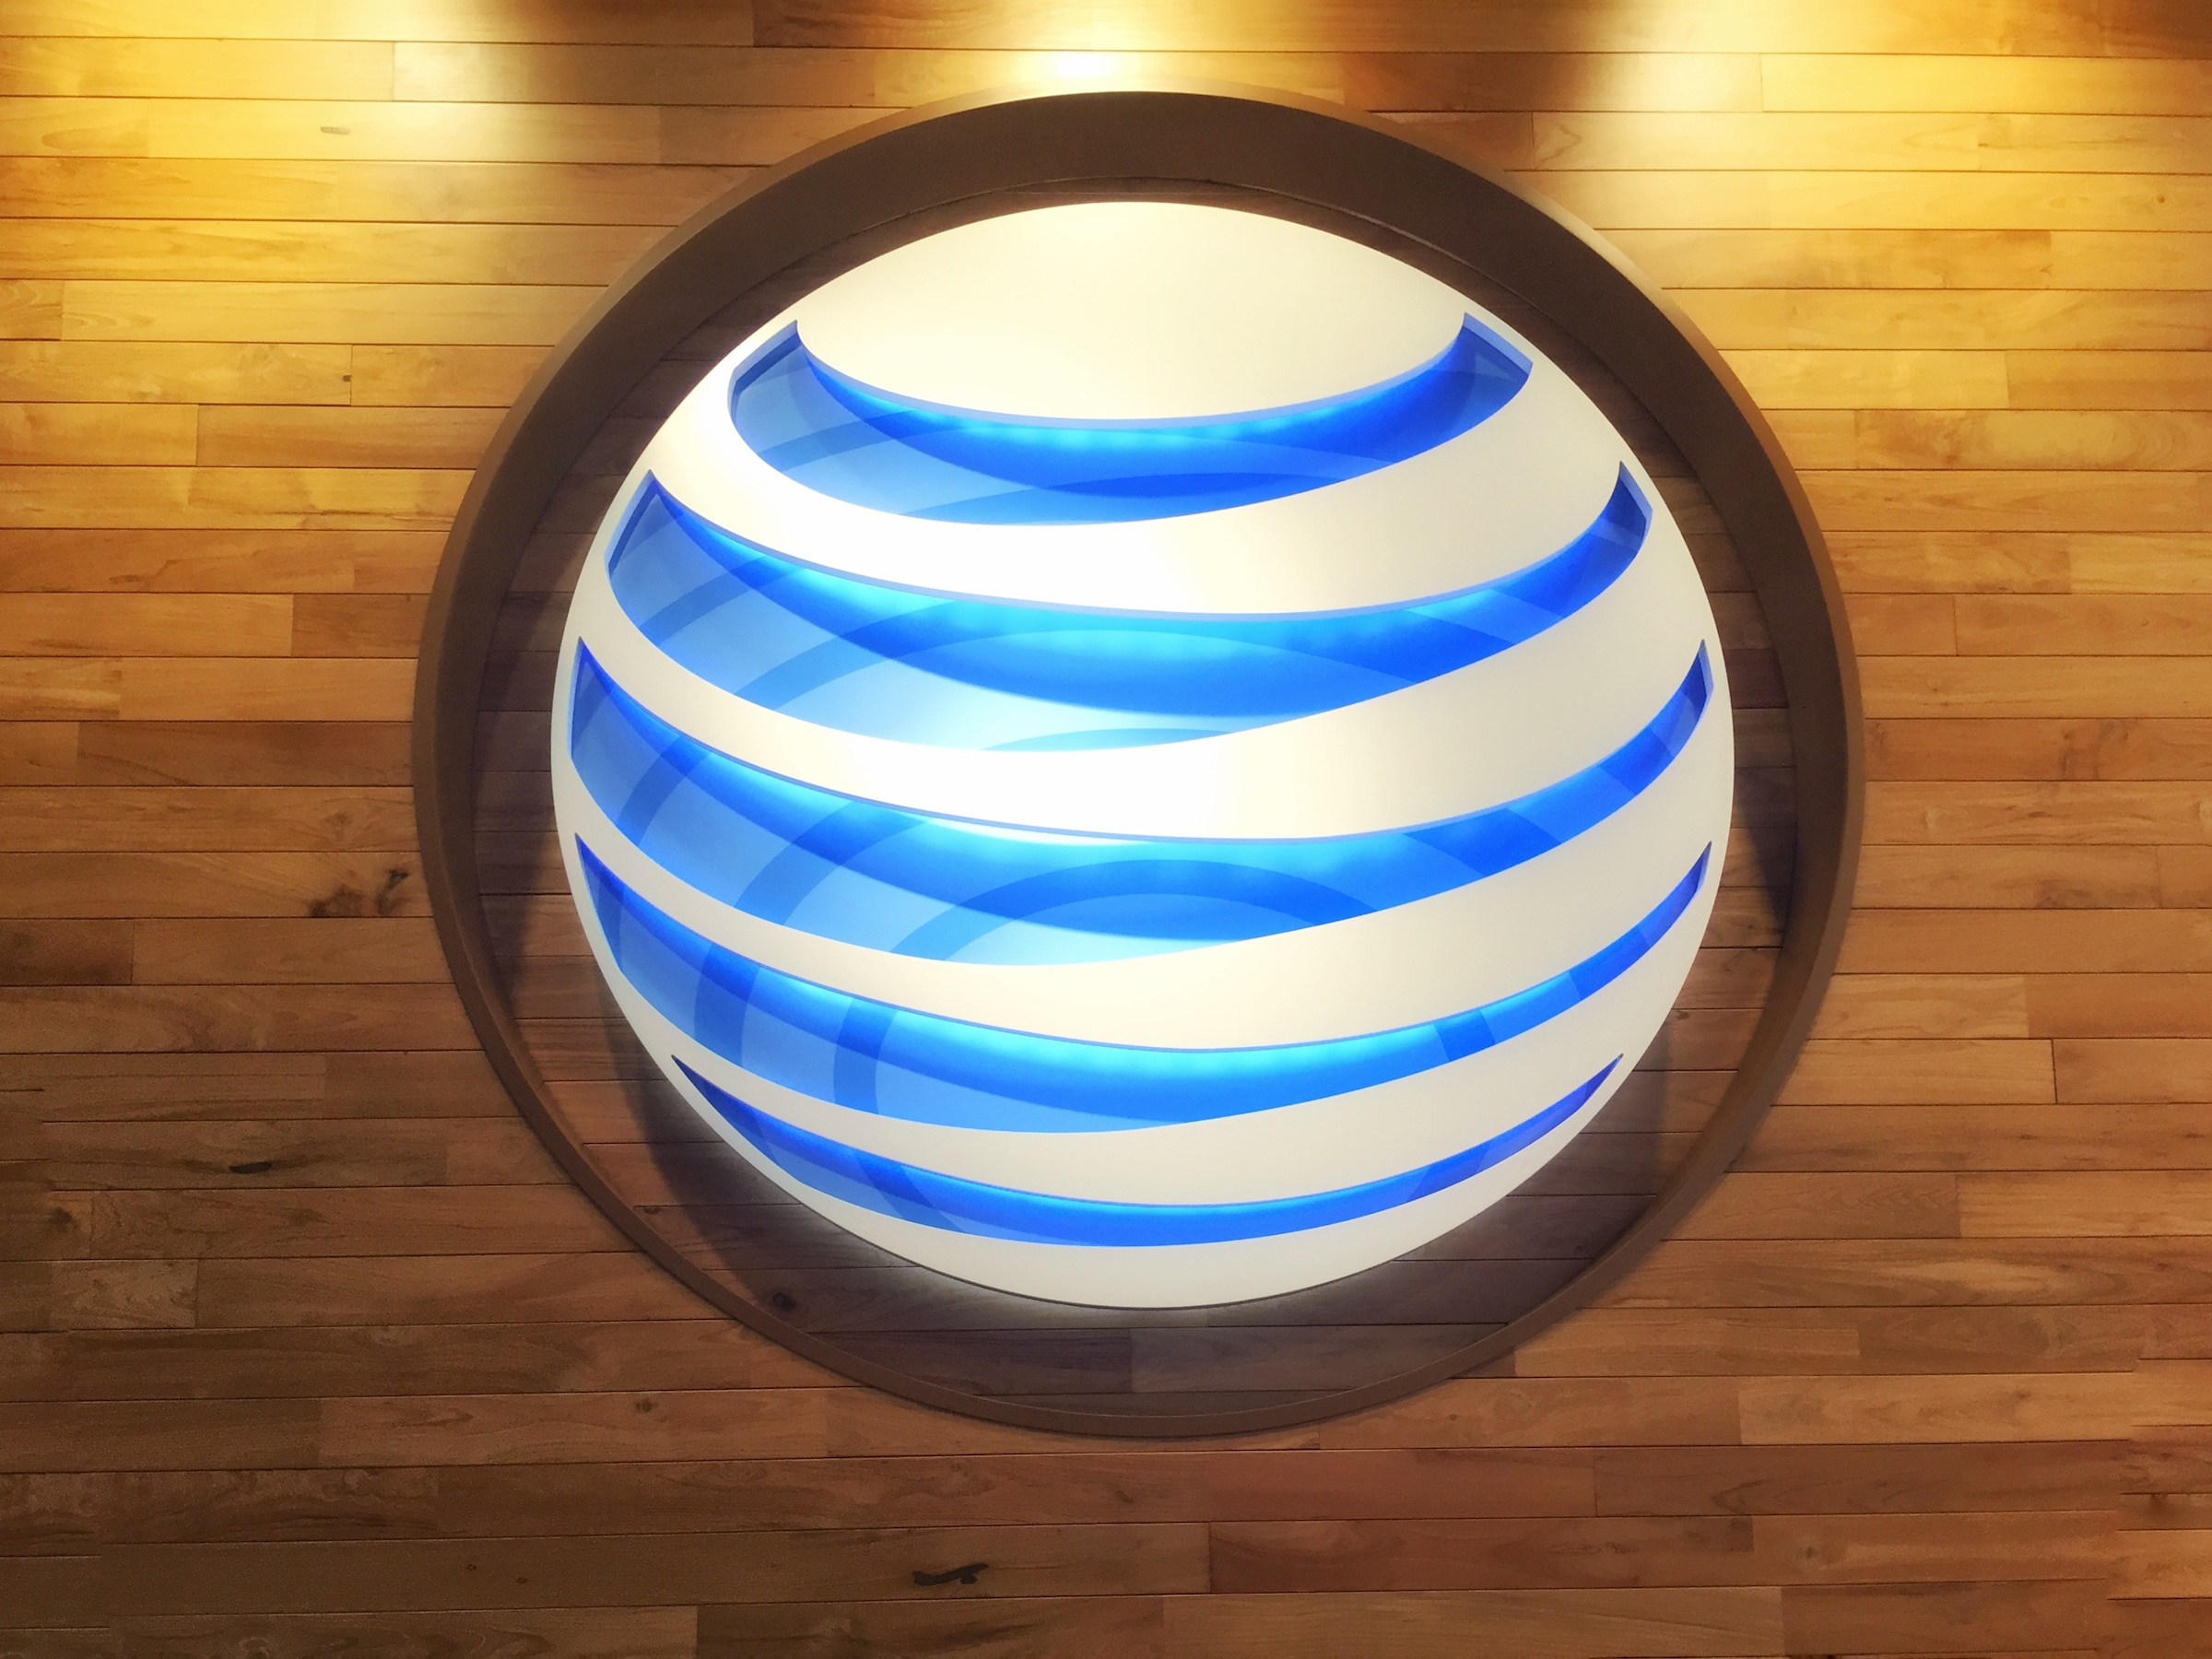 U.S. Army Chooses AT&T for Global Communications Supporting Nearly 1 Million Users